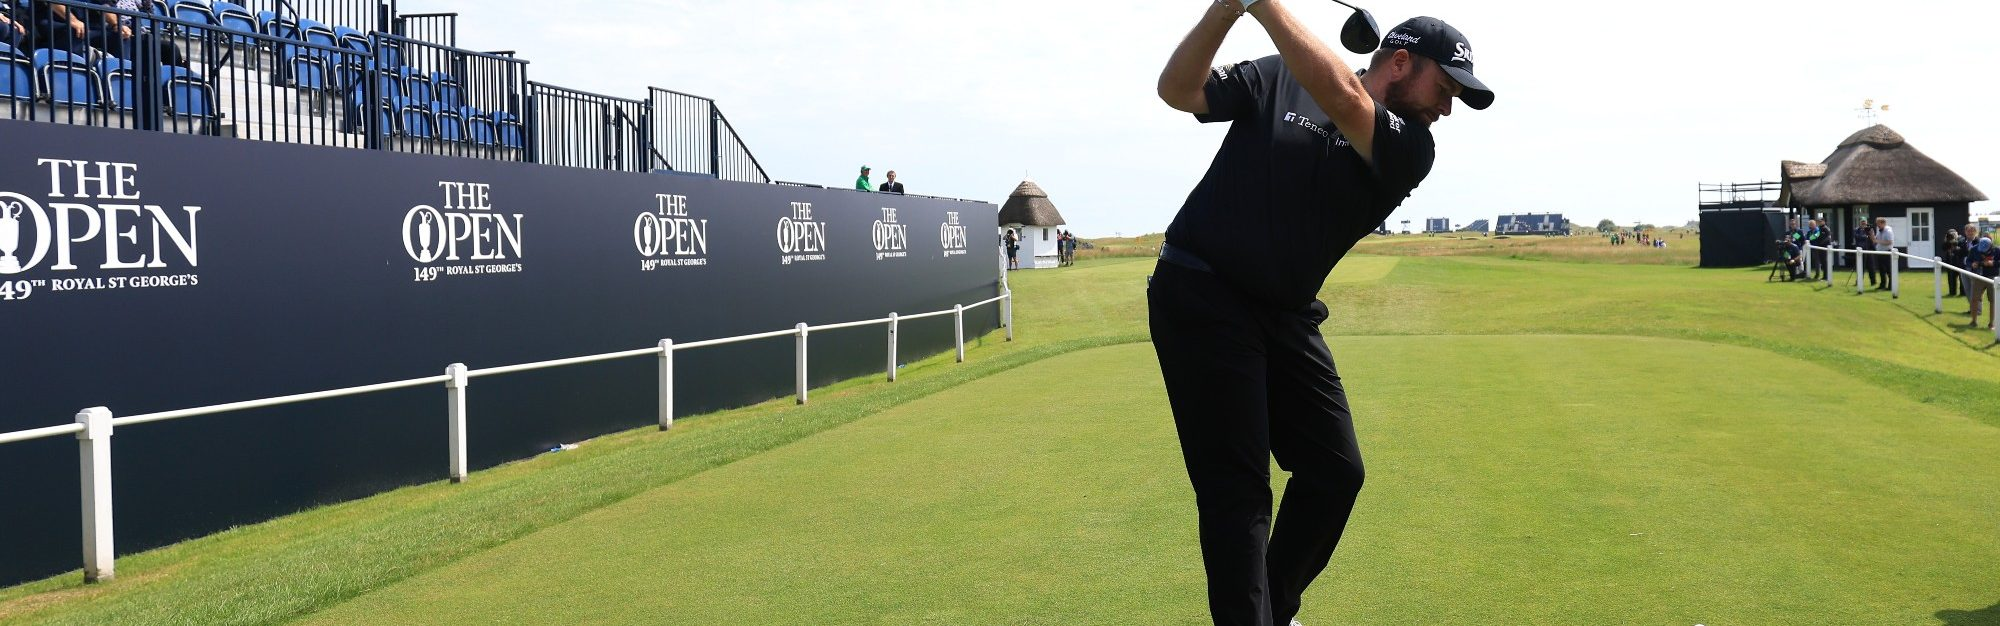 The Open tee times: Here's when each player will get underway at Royal St George's